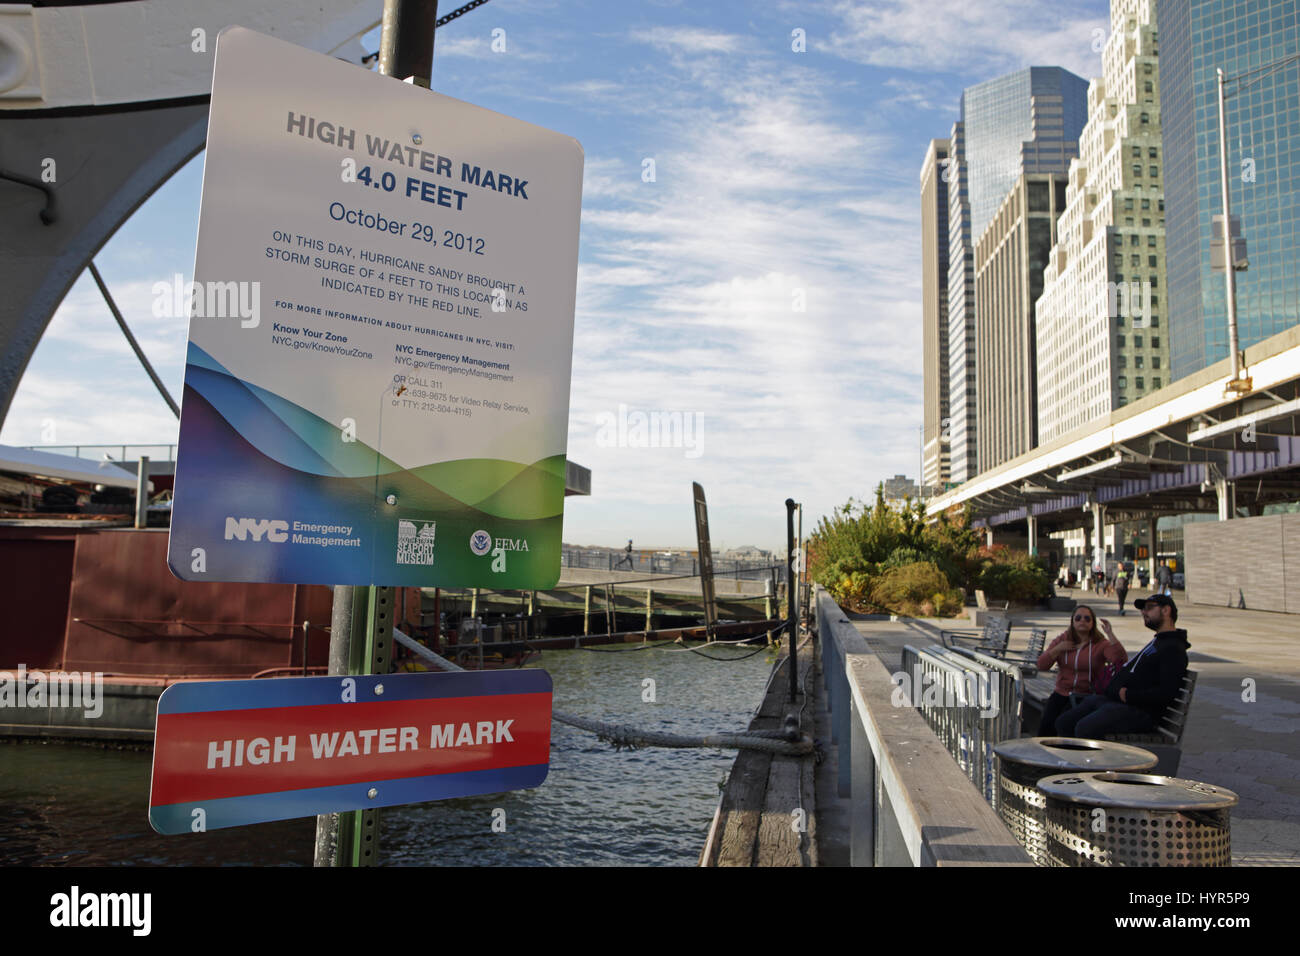 New York, NY, USA - November 8, 2016: High Water Mark sign on the East River in Lower Manhattan which records the Stock Photo